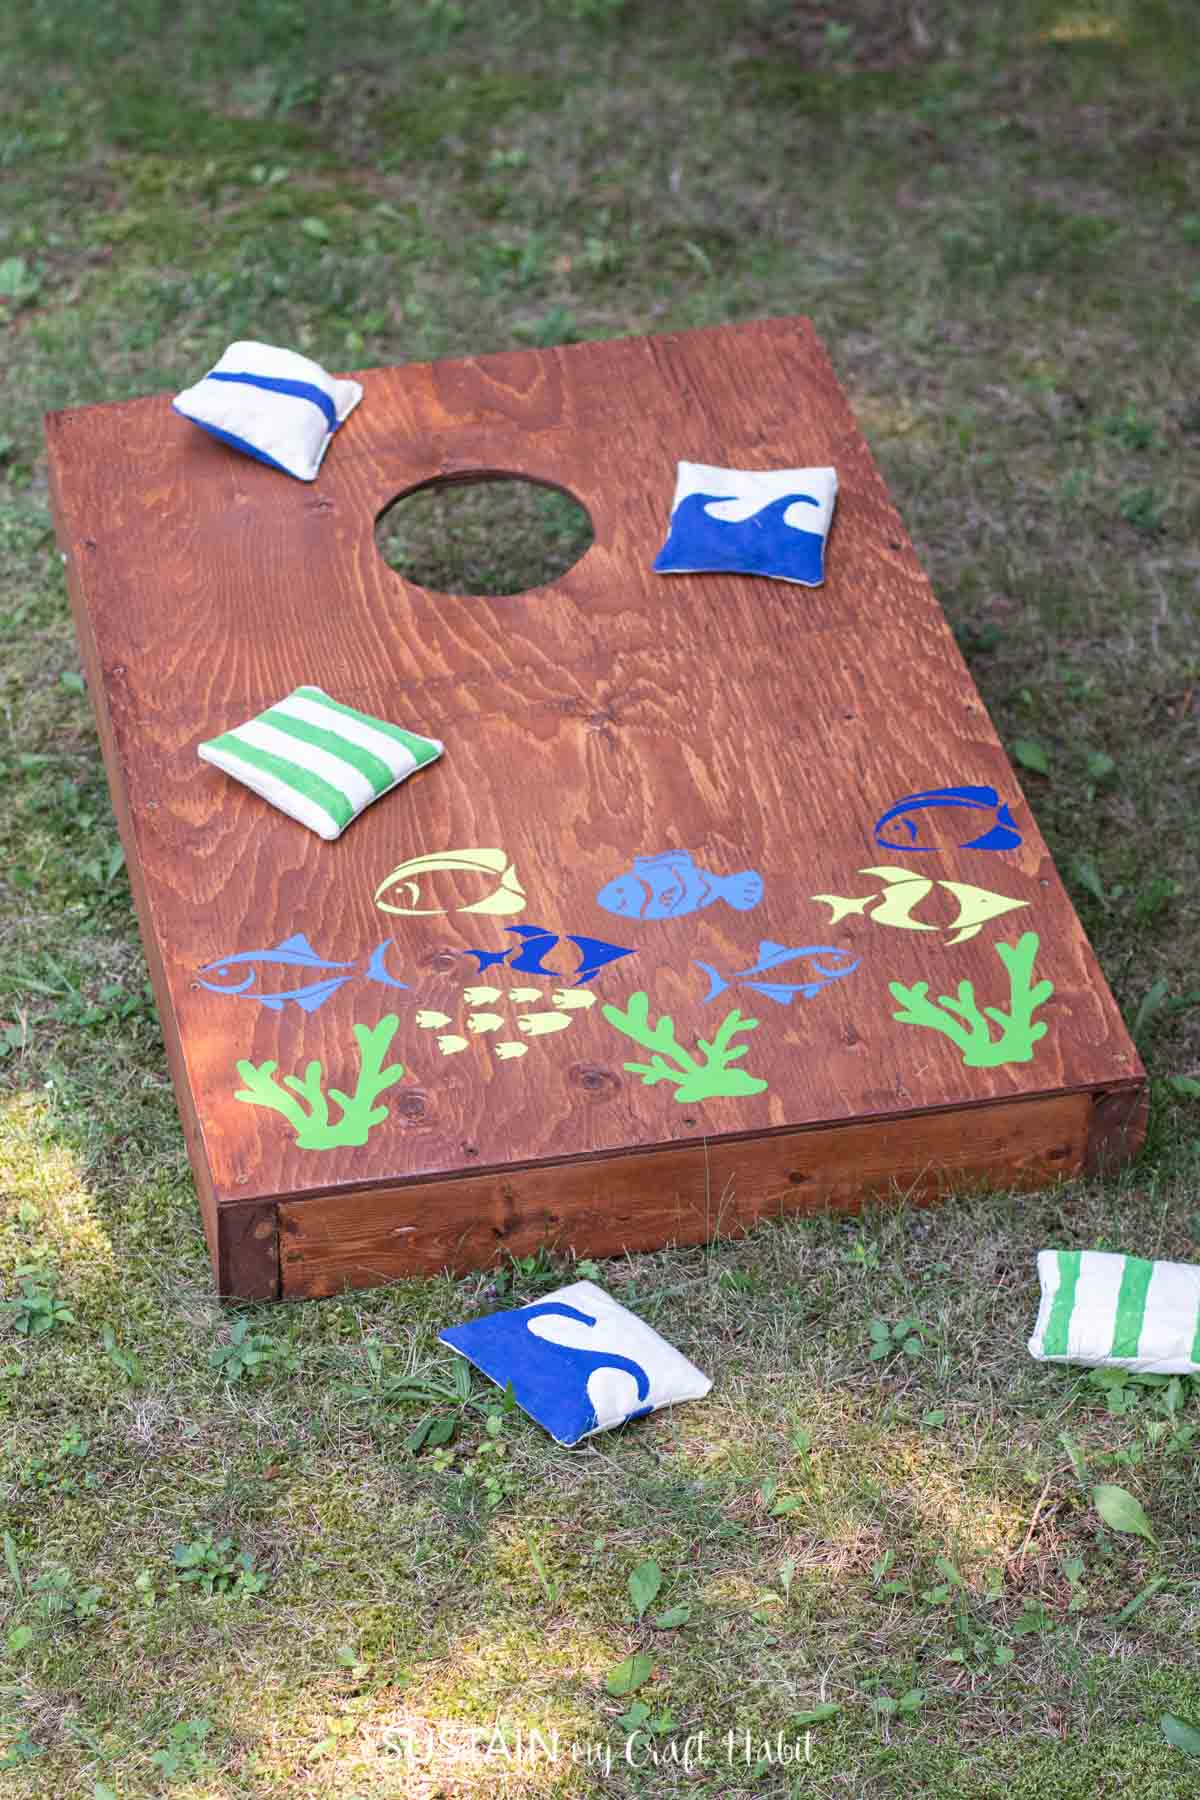 Cornhole board game embellished with fish decals using Cricut Joy and Smart Vinyl.